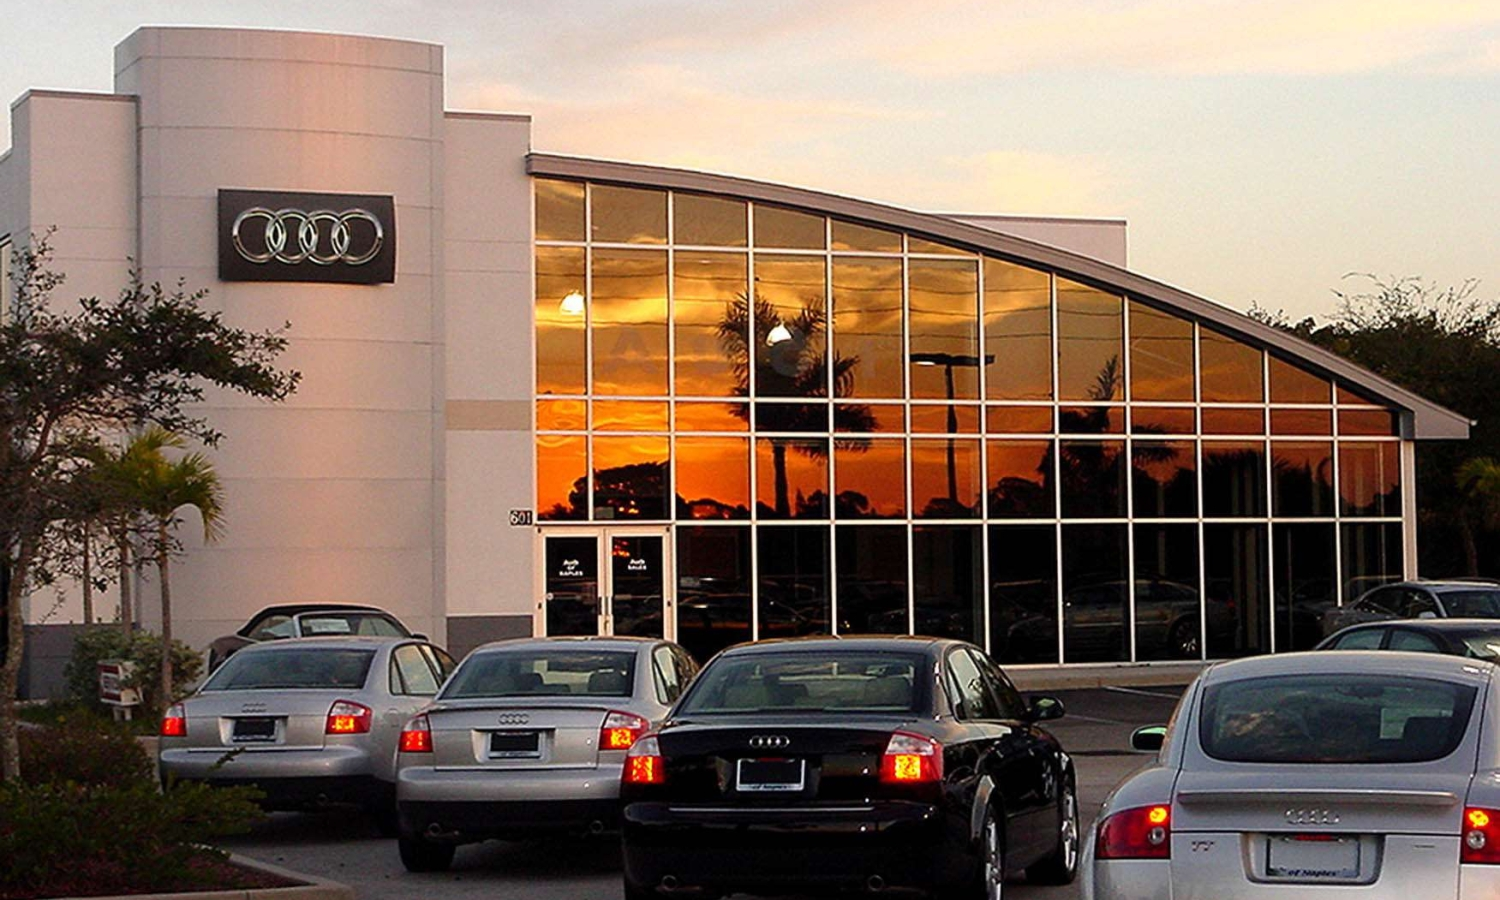 Audi / Volkswagen Dealership Service Center and Sales Canopy